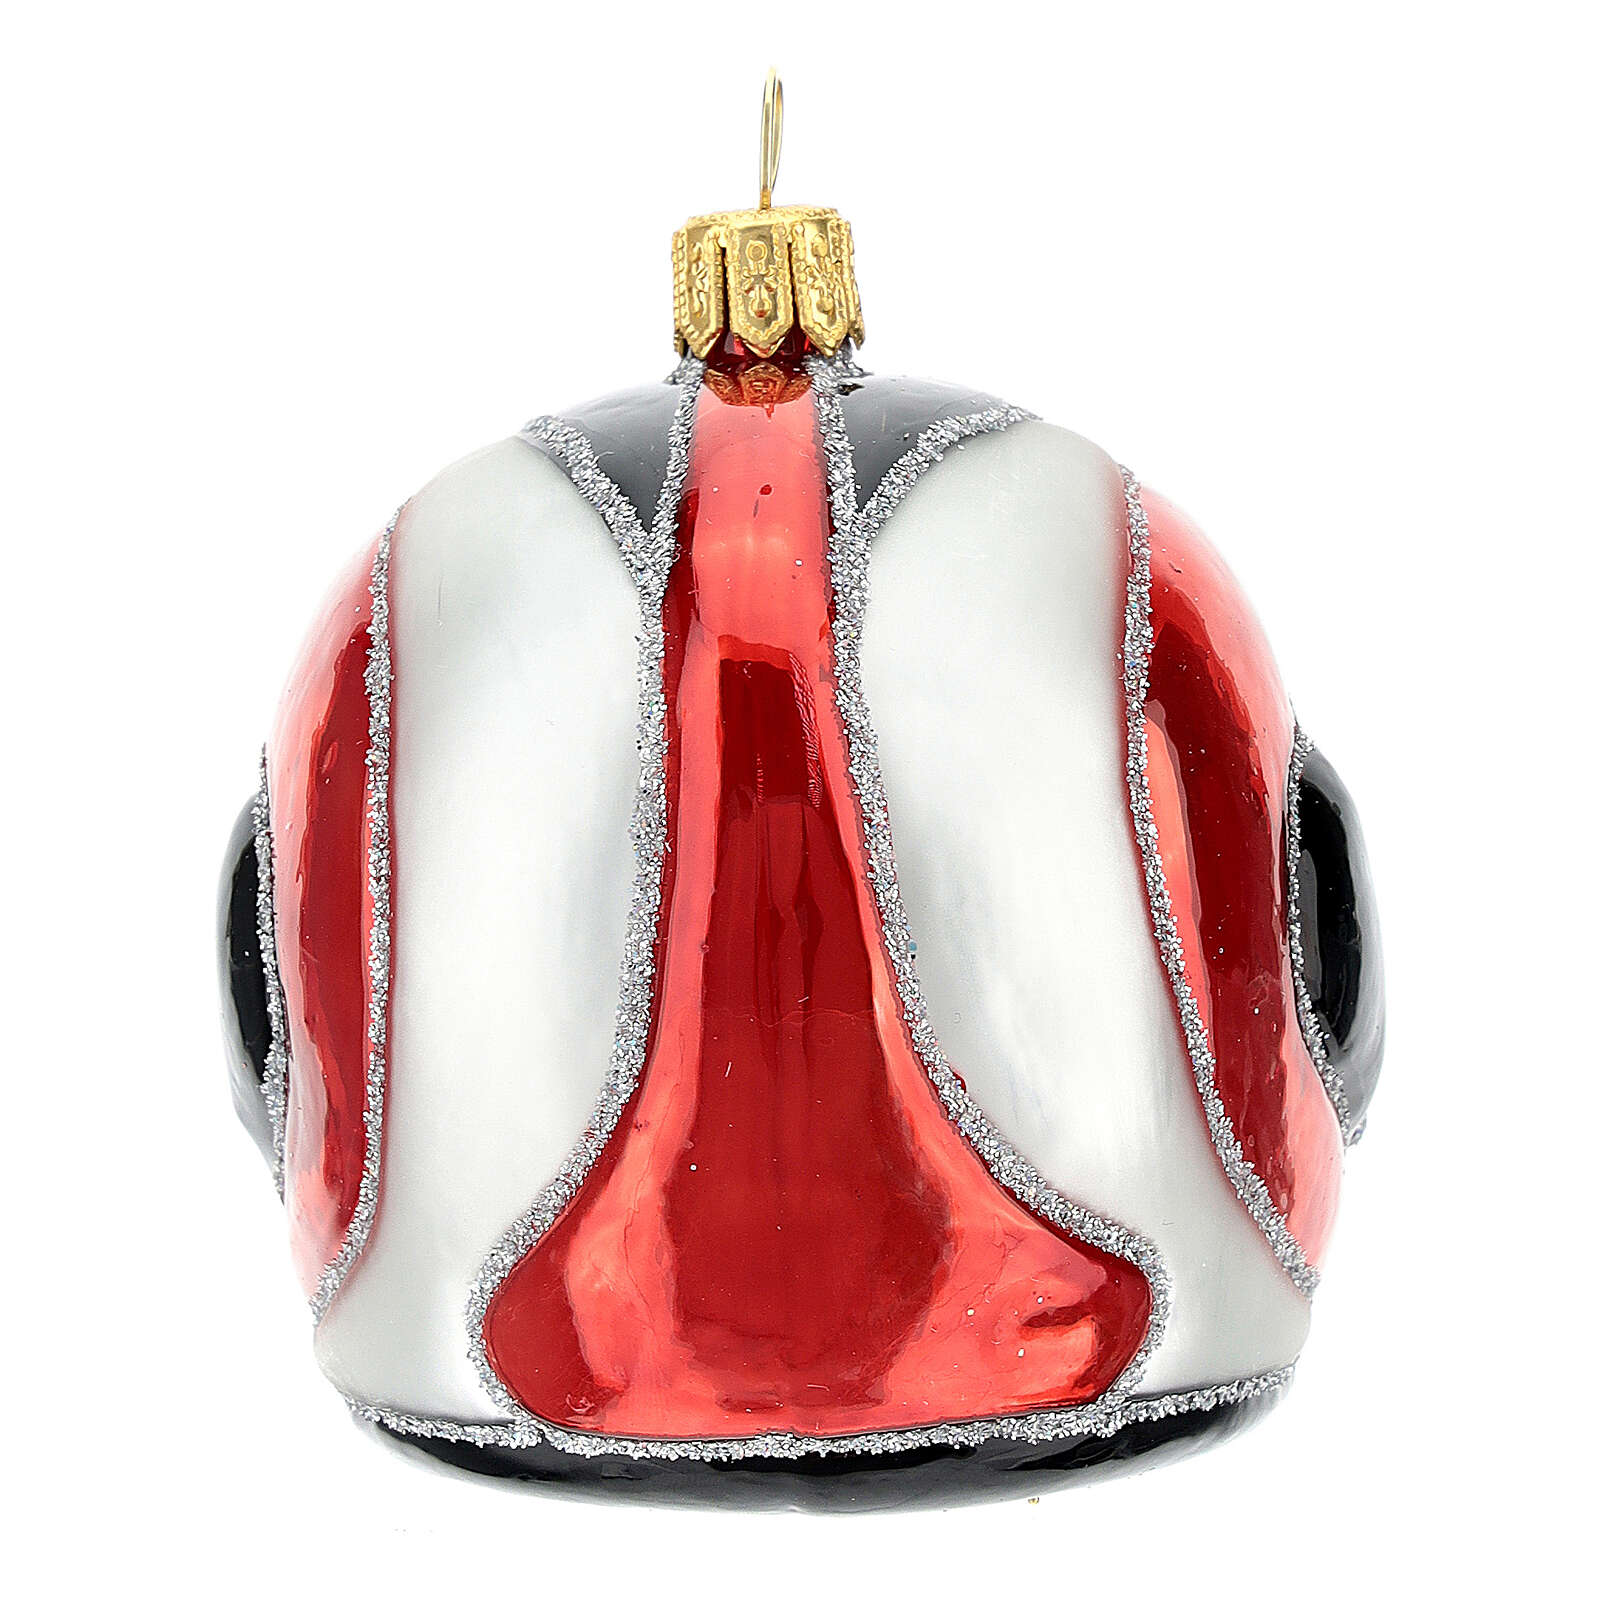 Blown glass Christmas ornament, motorcycle helmet 4